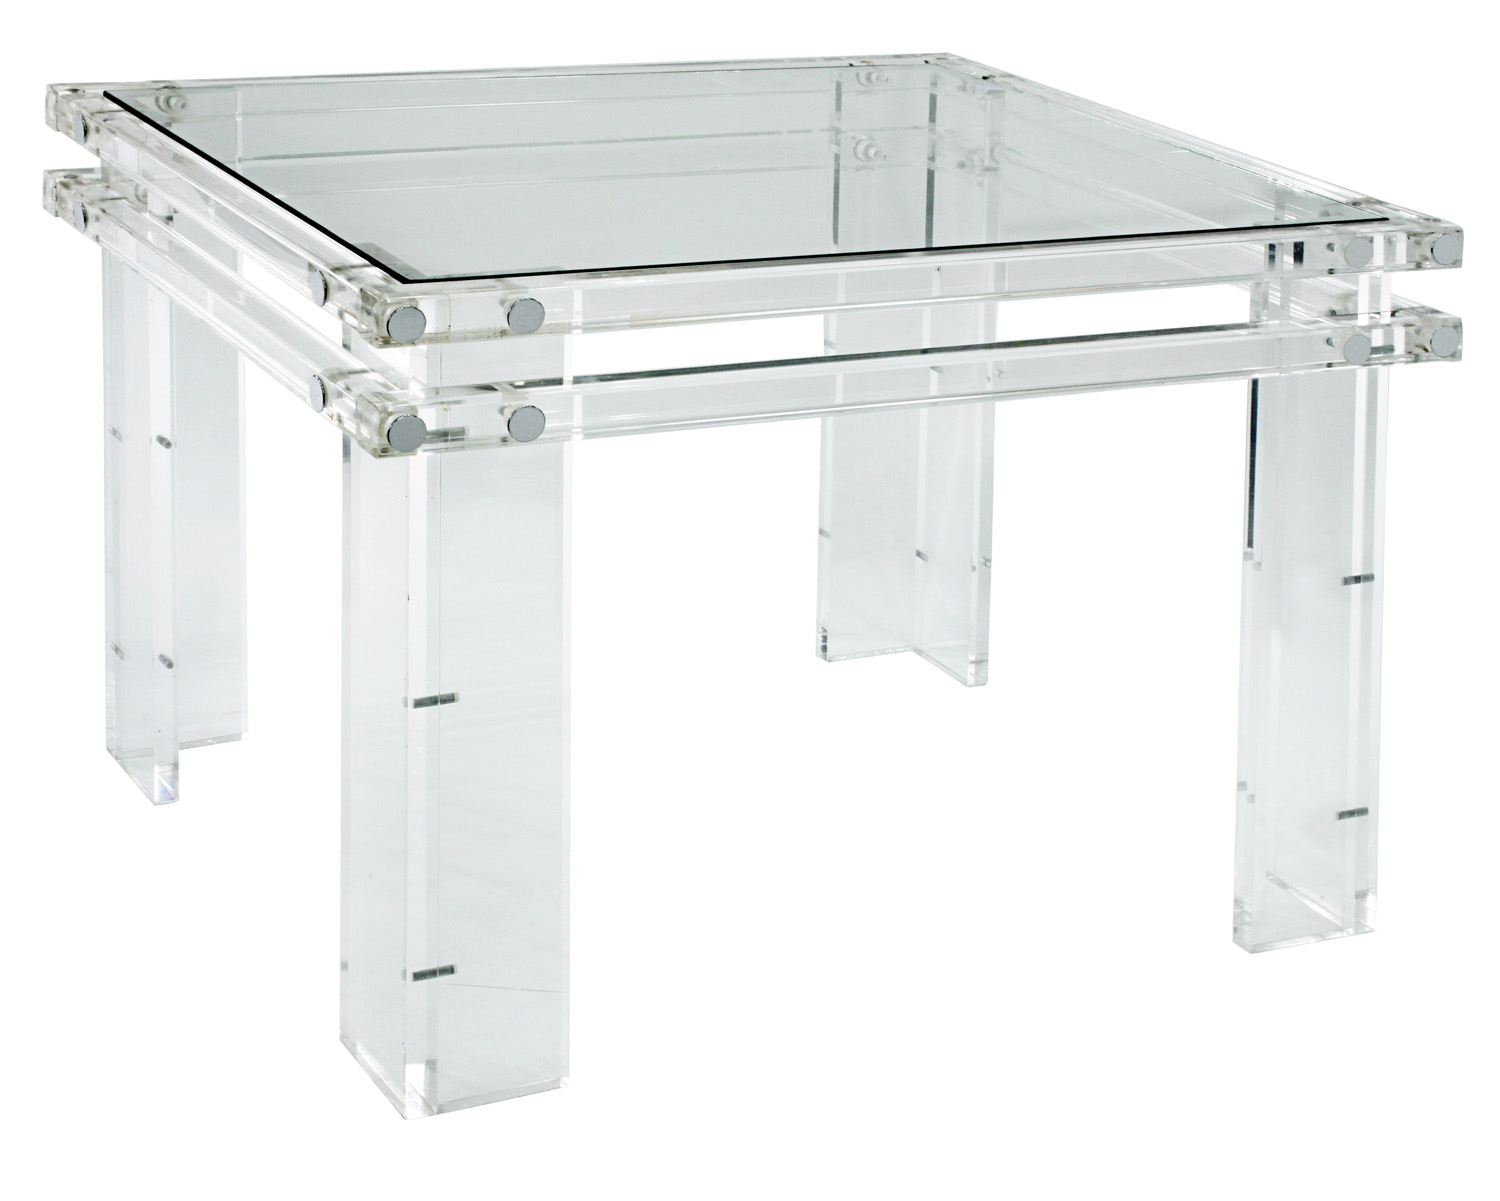 70s 35 square thick lucite+glass endtable143 hires.jpg